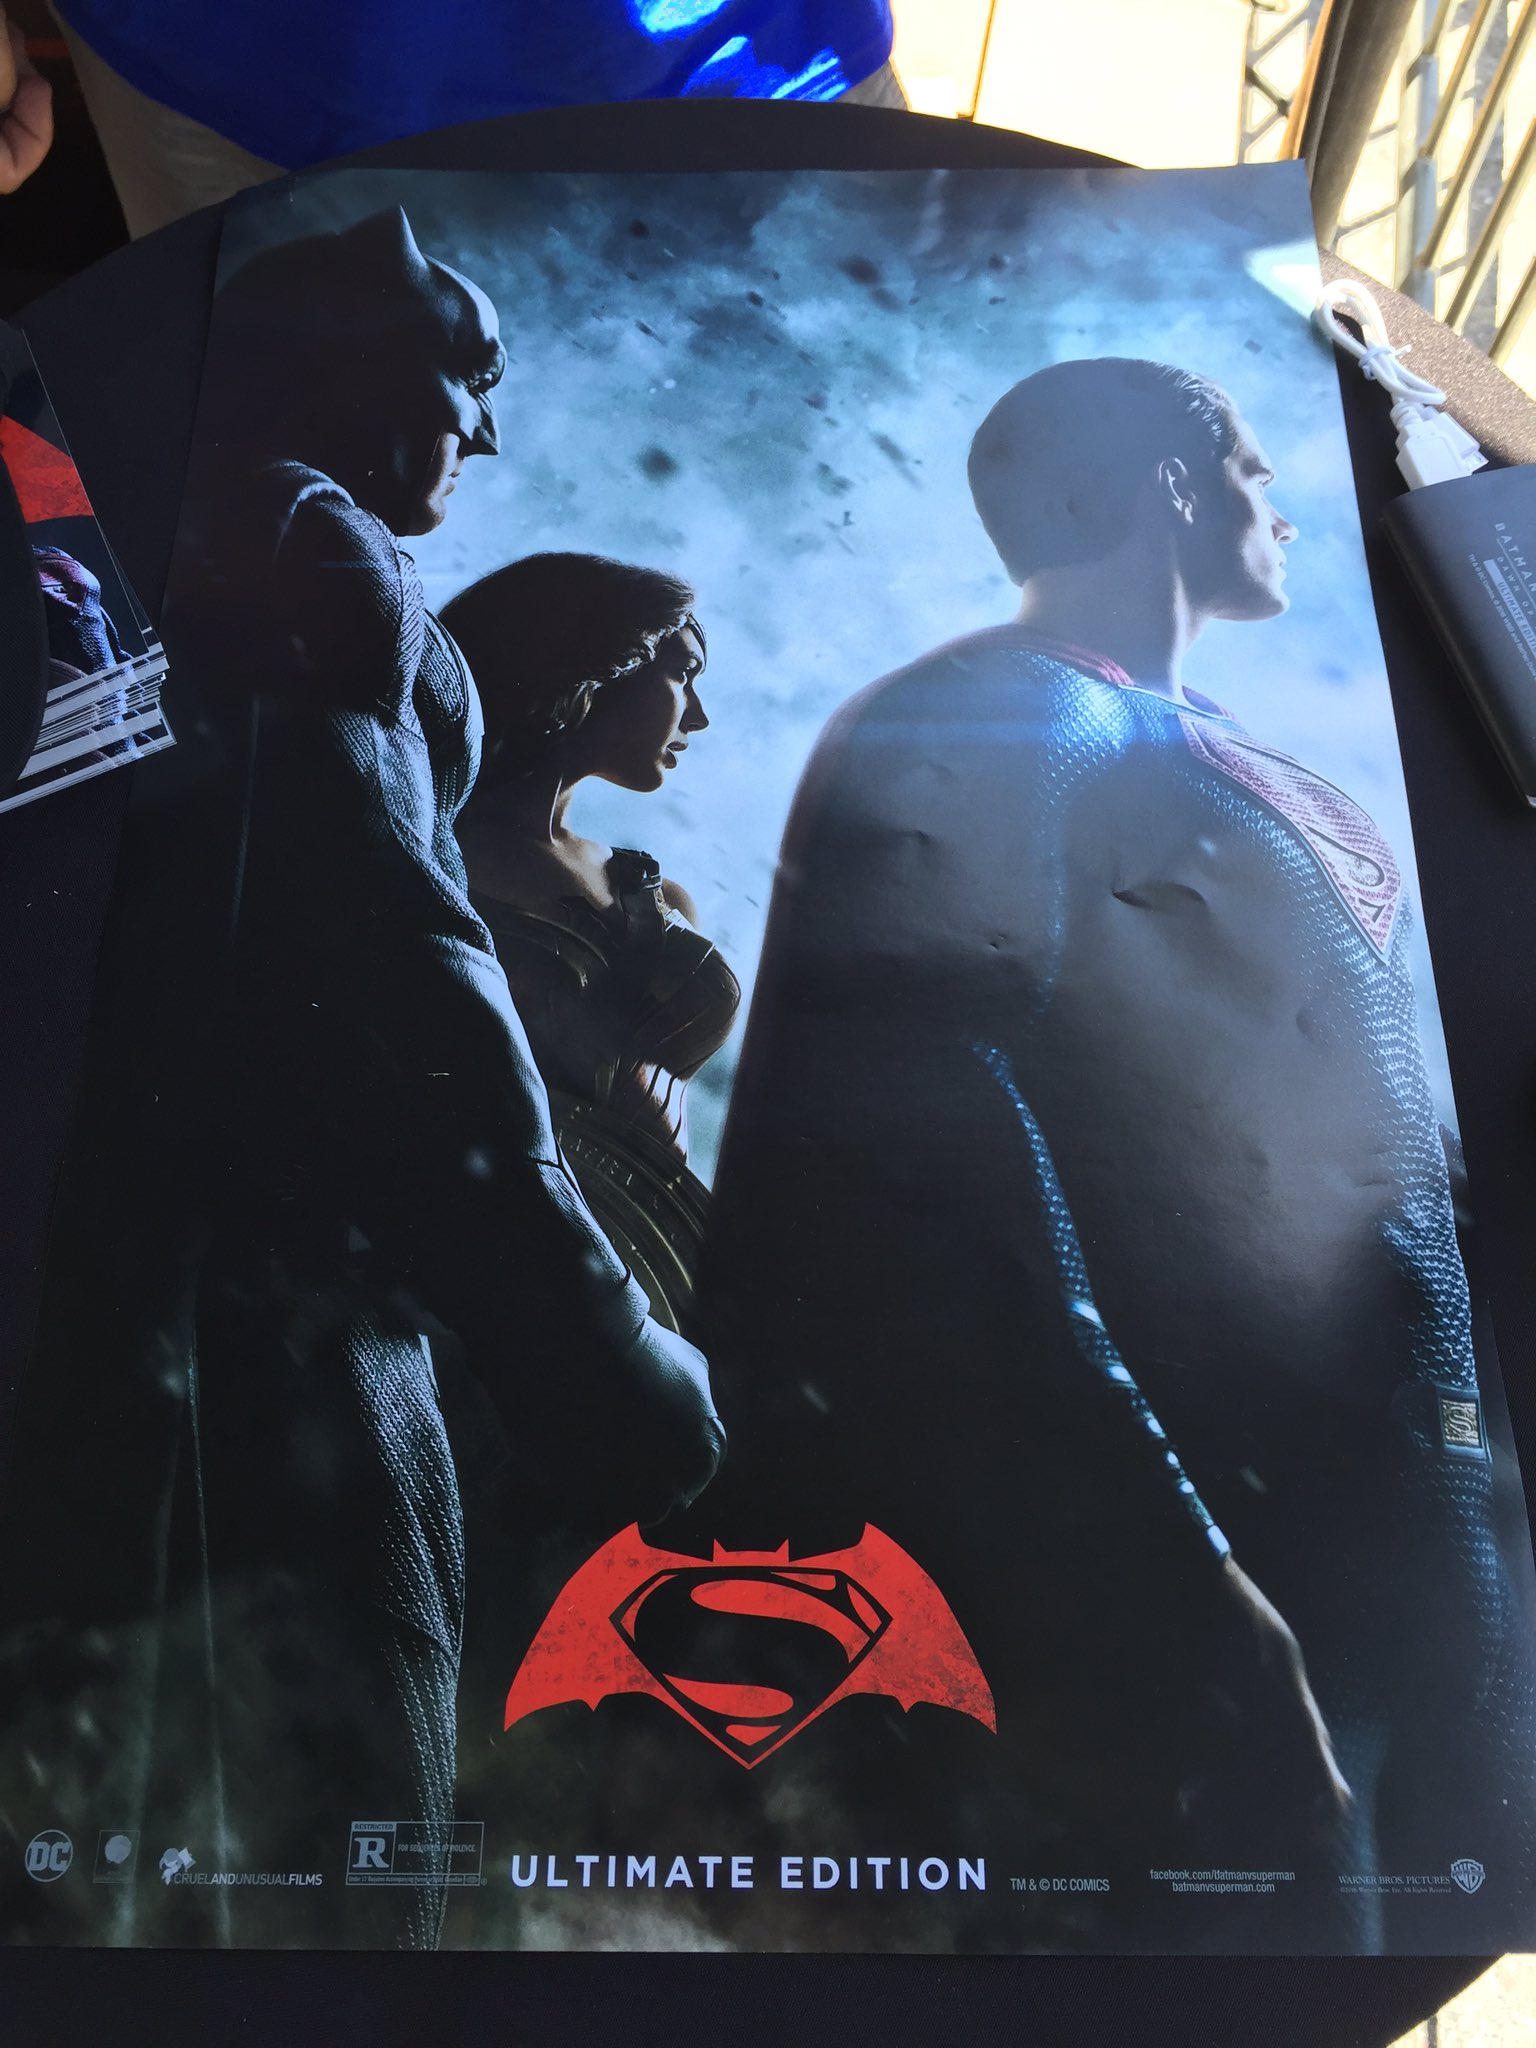 SDCC New ComicCon Poster For BATMAN V SUPERMAN Spotted Plus - Brand new batmobile revealed awesome